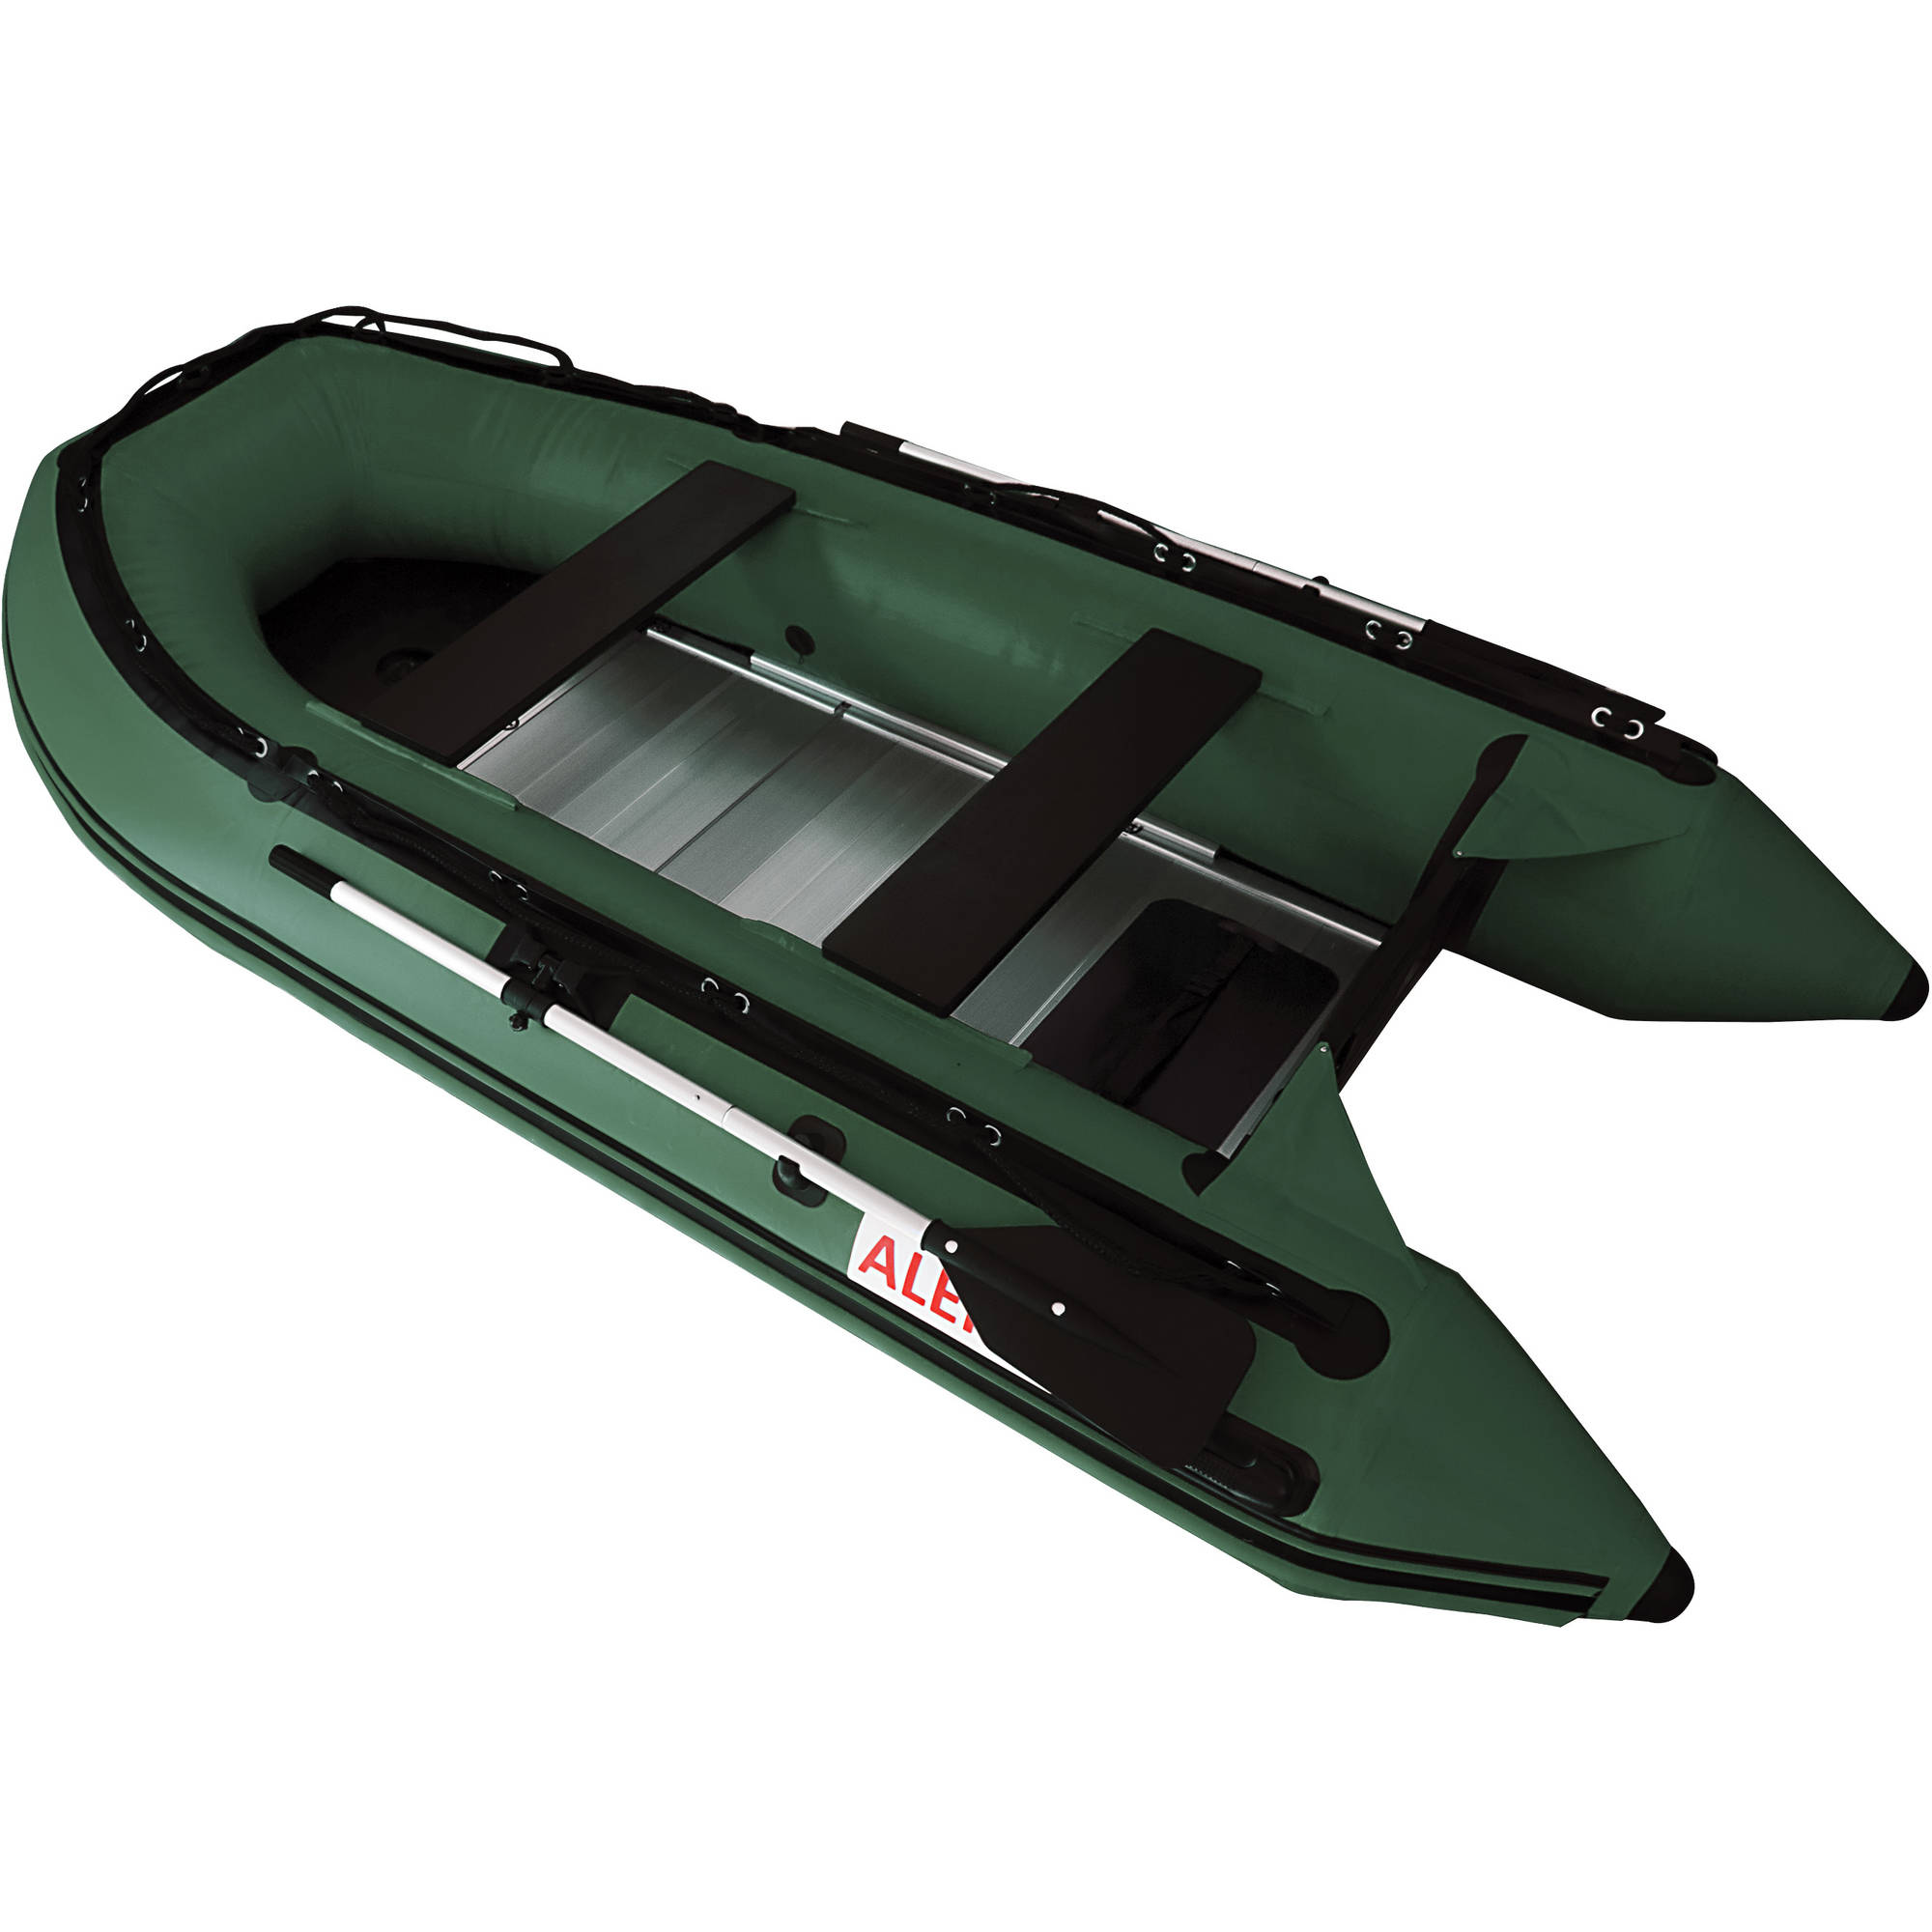 ALEKO Inflatable 4-Person Fishing Boat Aluminum Floor 10.5 Feet Green by ALEKO